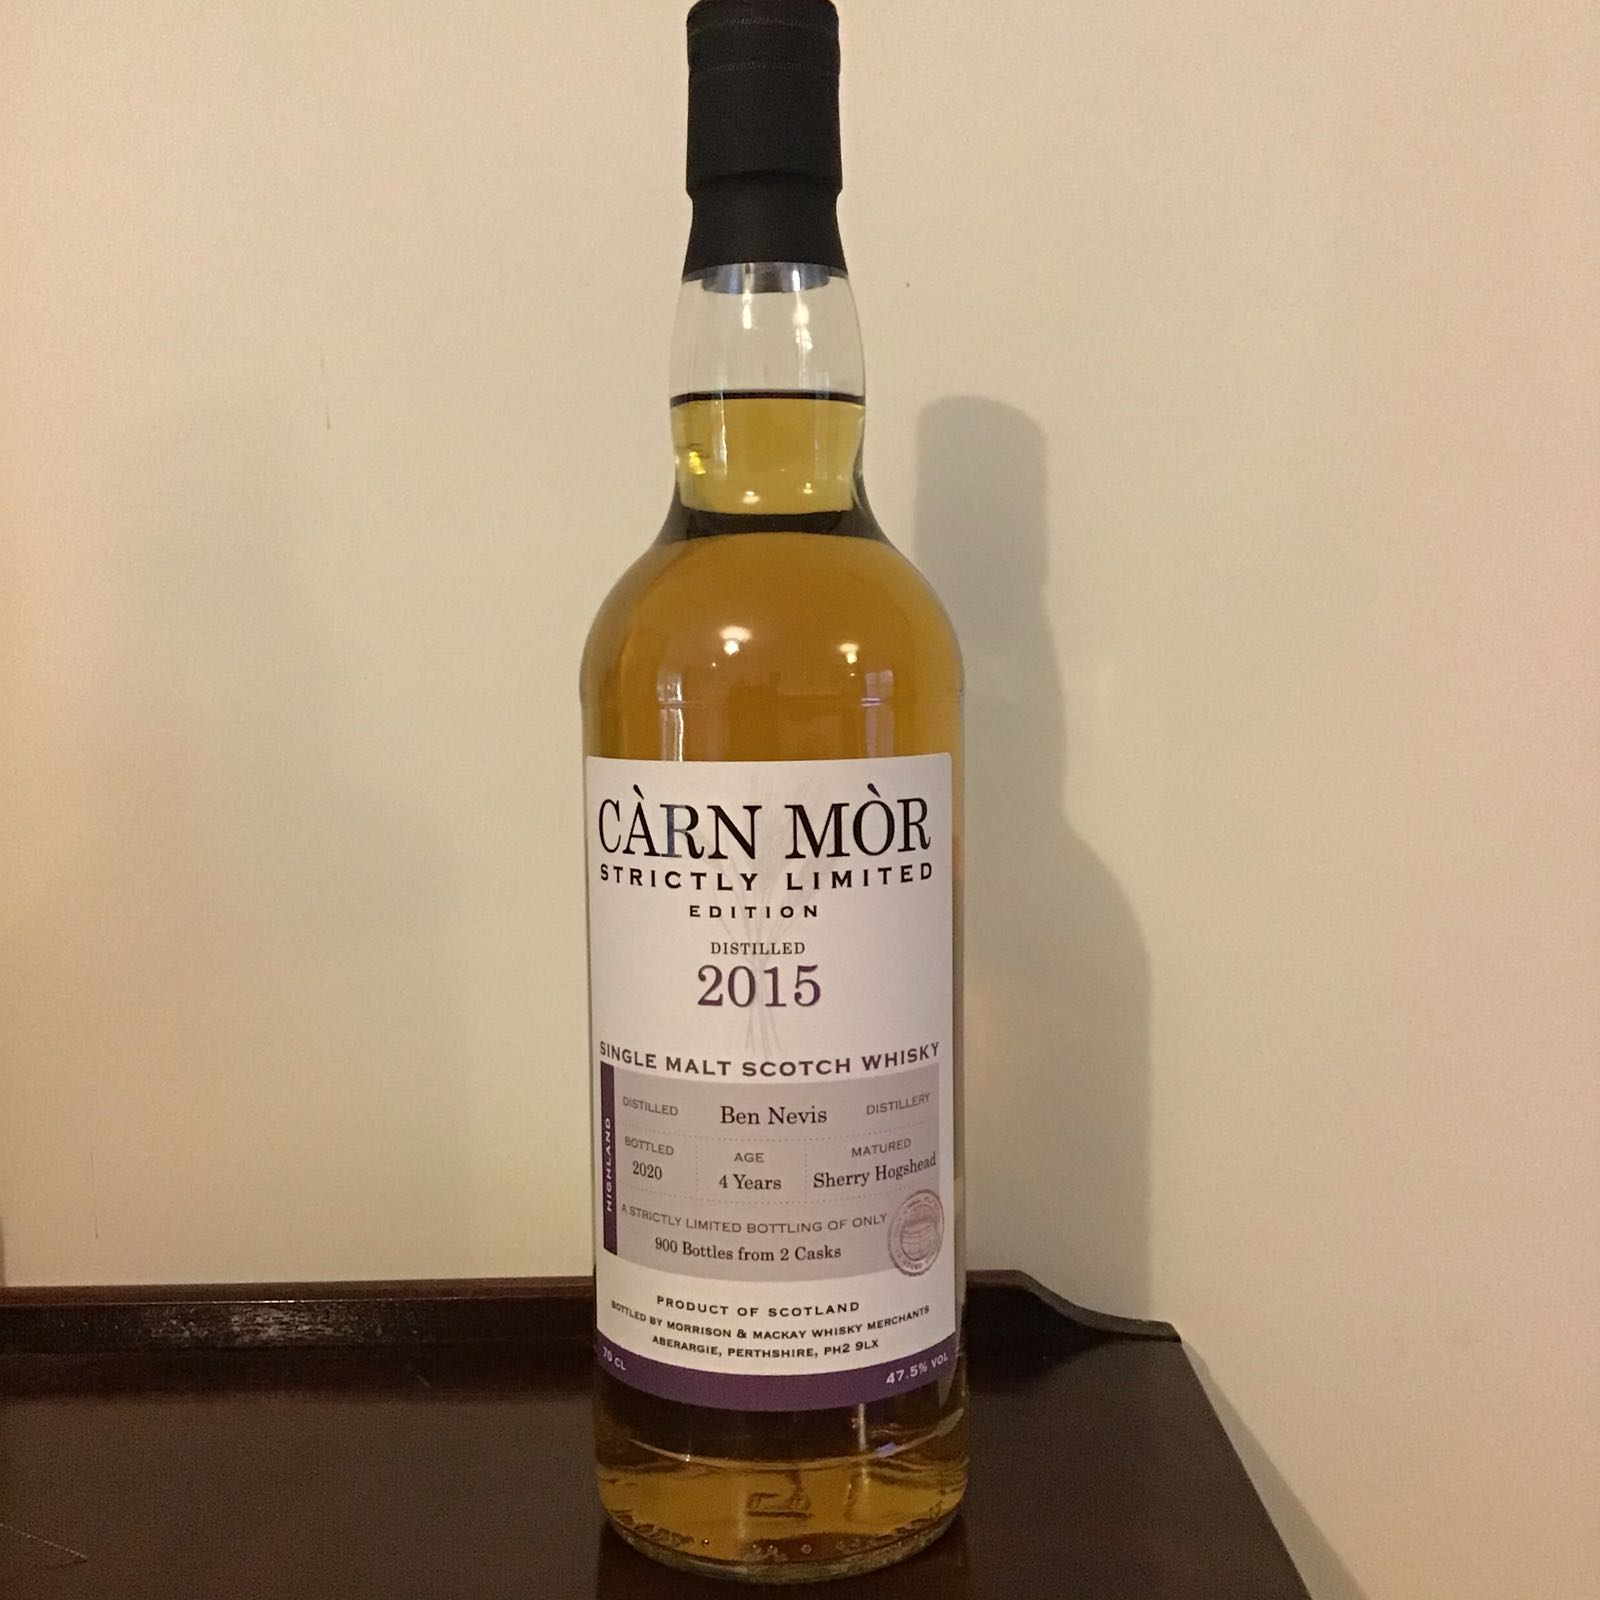 Carn Mor Strictly Limited: Ben Nevis 2015 (4yr old)